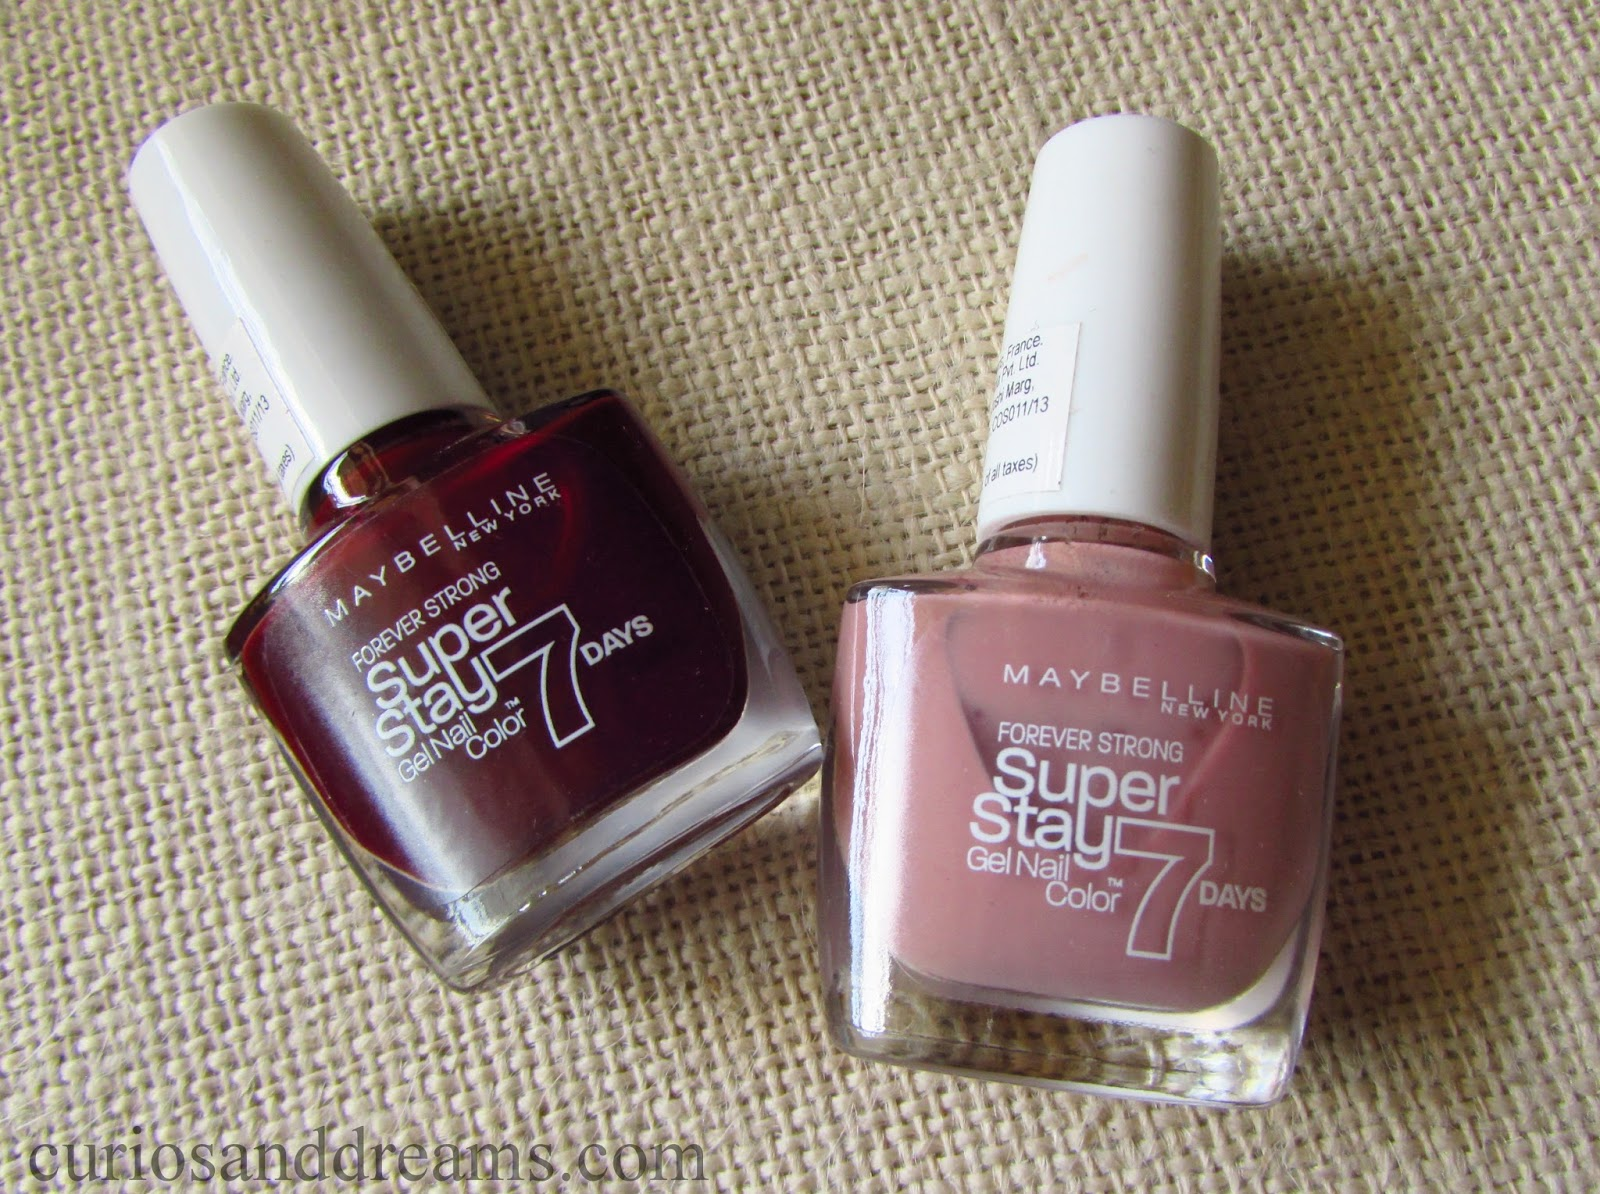 Curios and Dreams | Makeup and Beauty Product Reviews : Maybelline ...